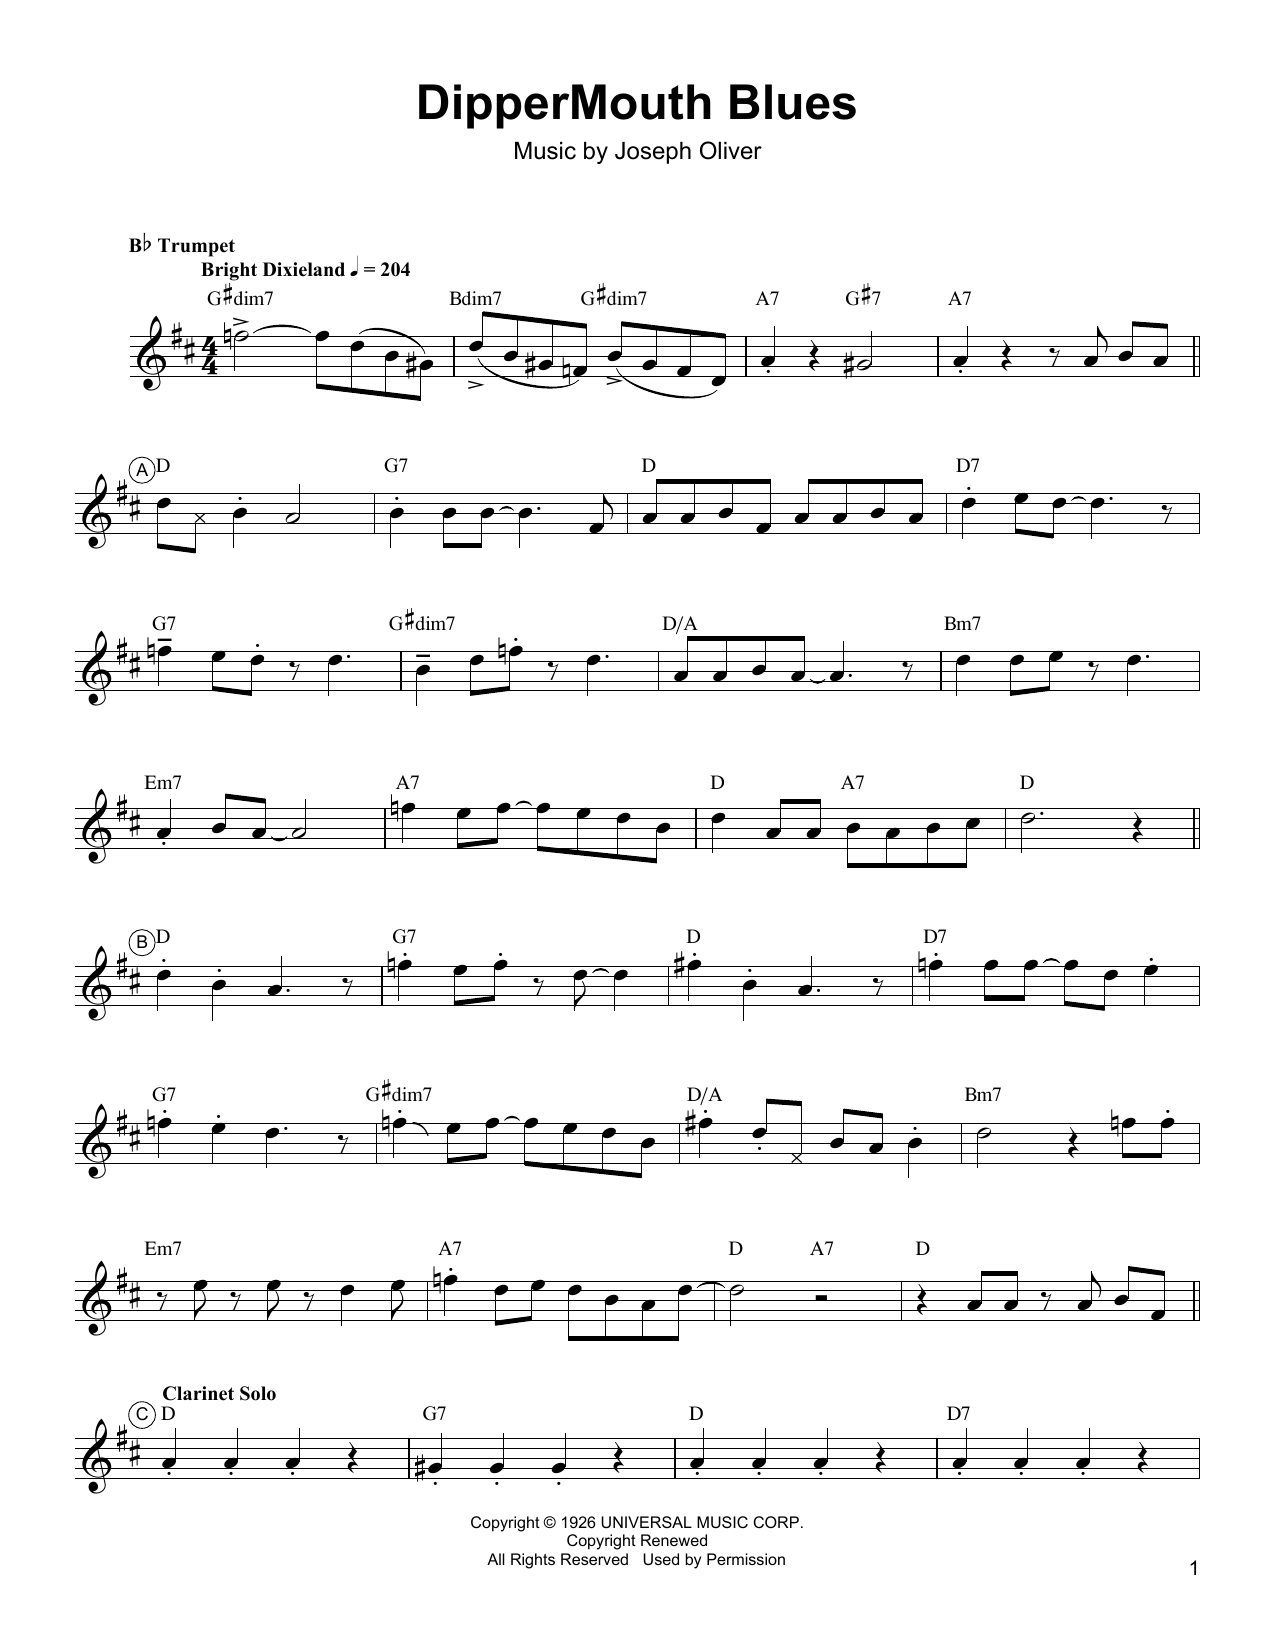 Arturo Sandoval Dippermouth Blues sheet music notes and chords